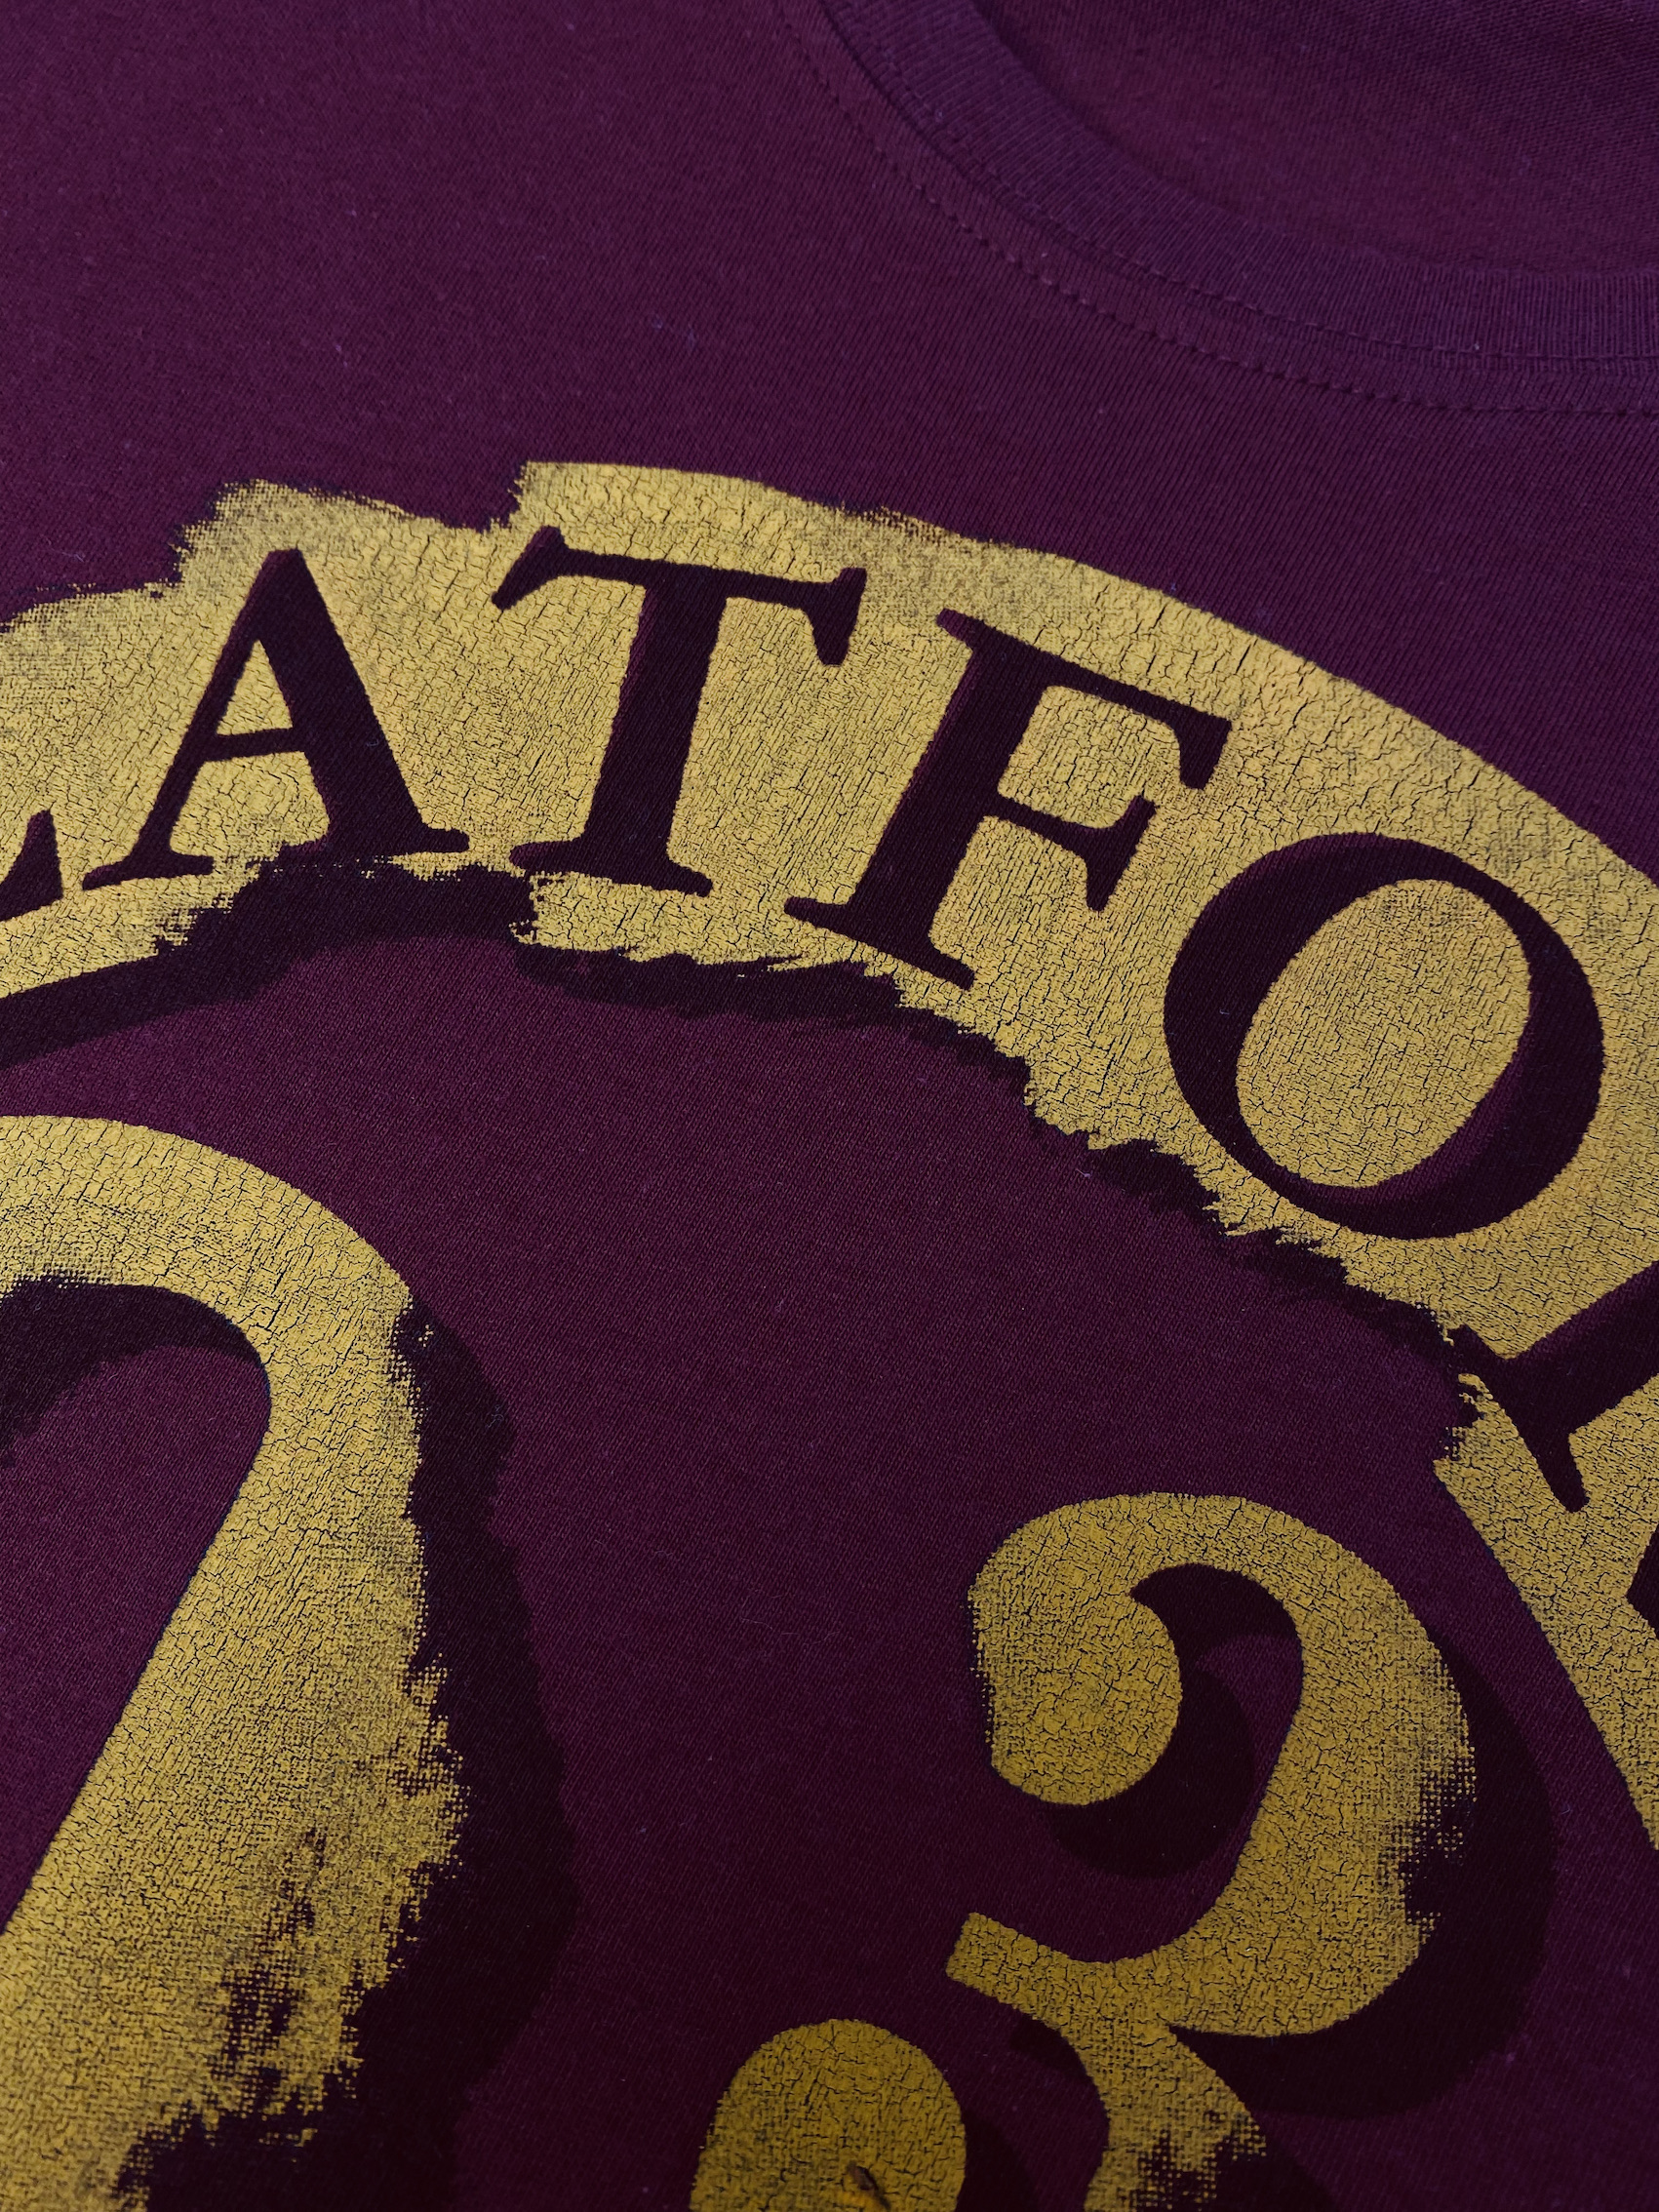 Using cracking ink can provide the feel of age to the right t-shirt designs